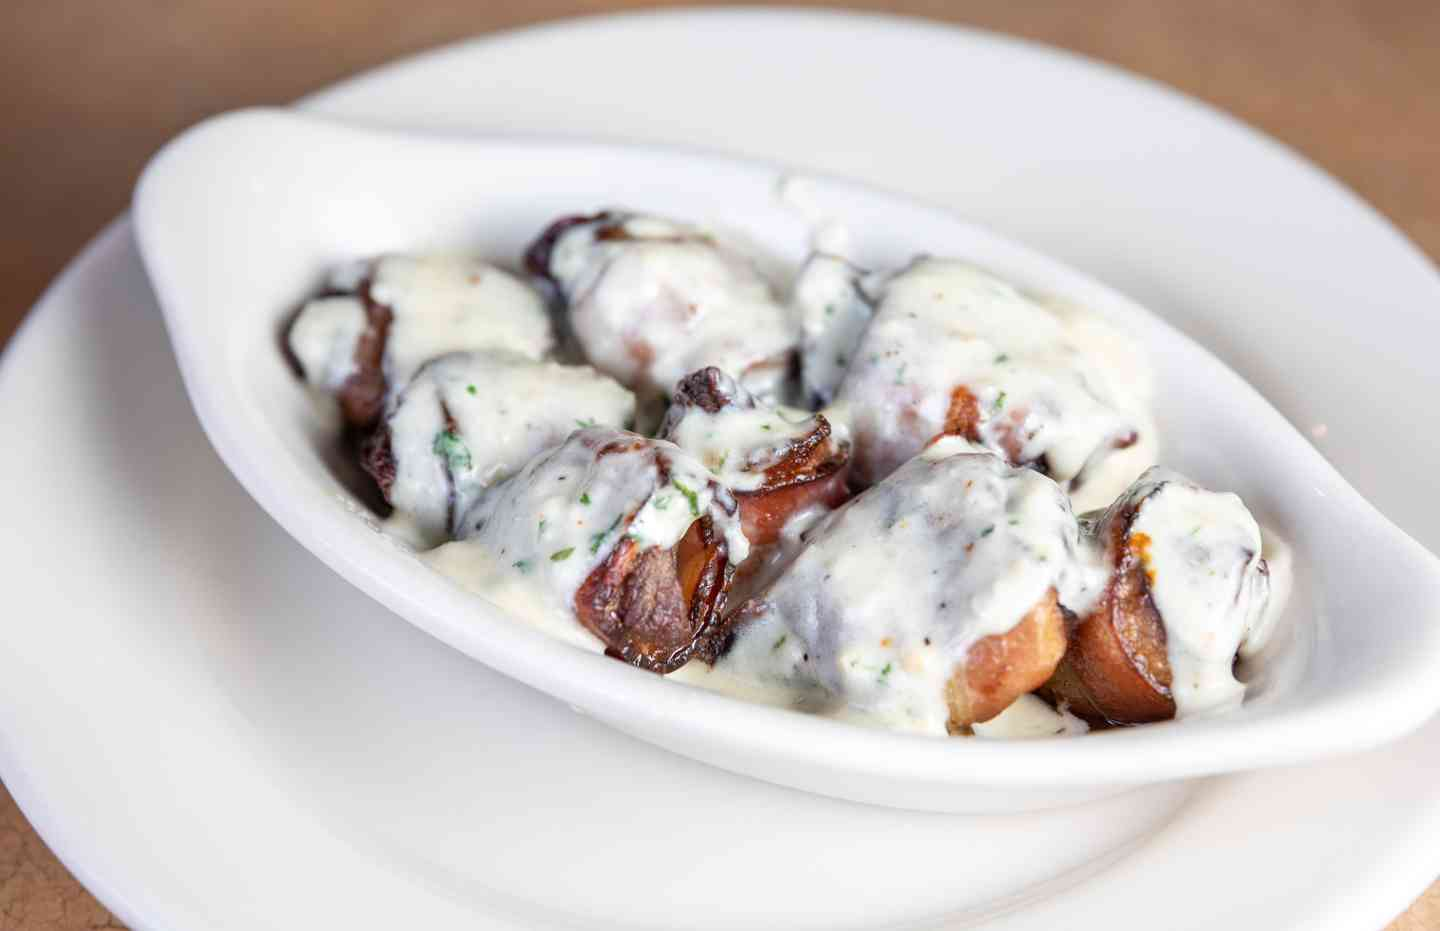 Gorgonzola Steak Bites